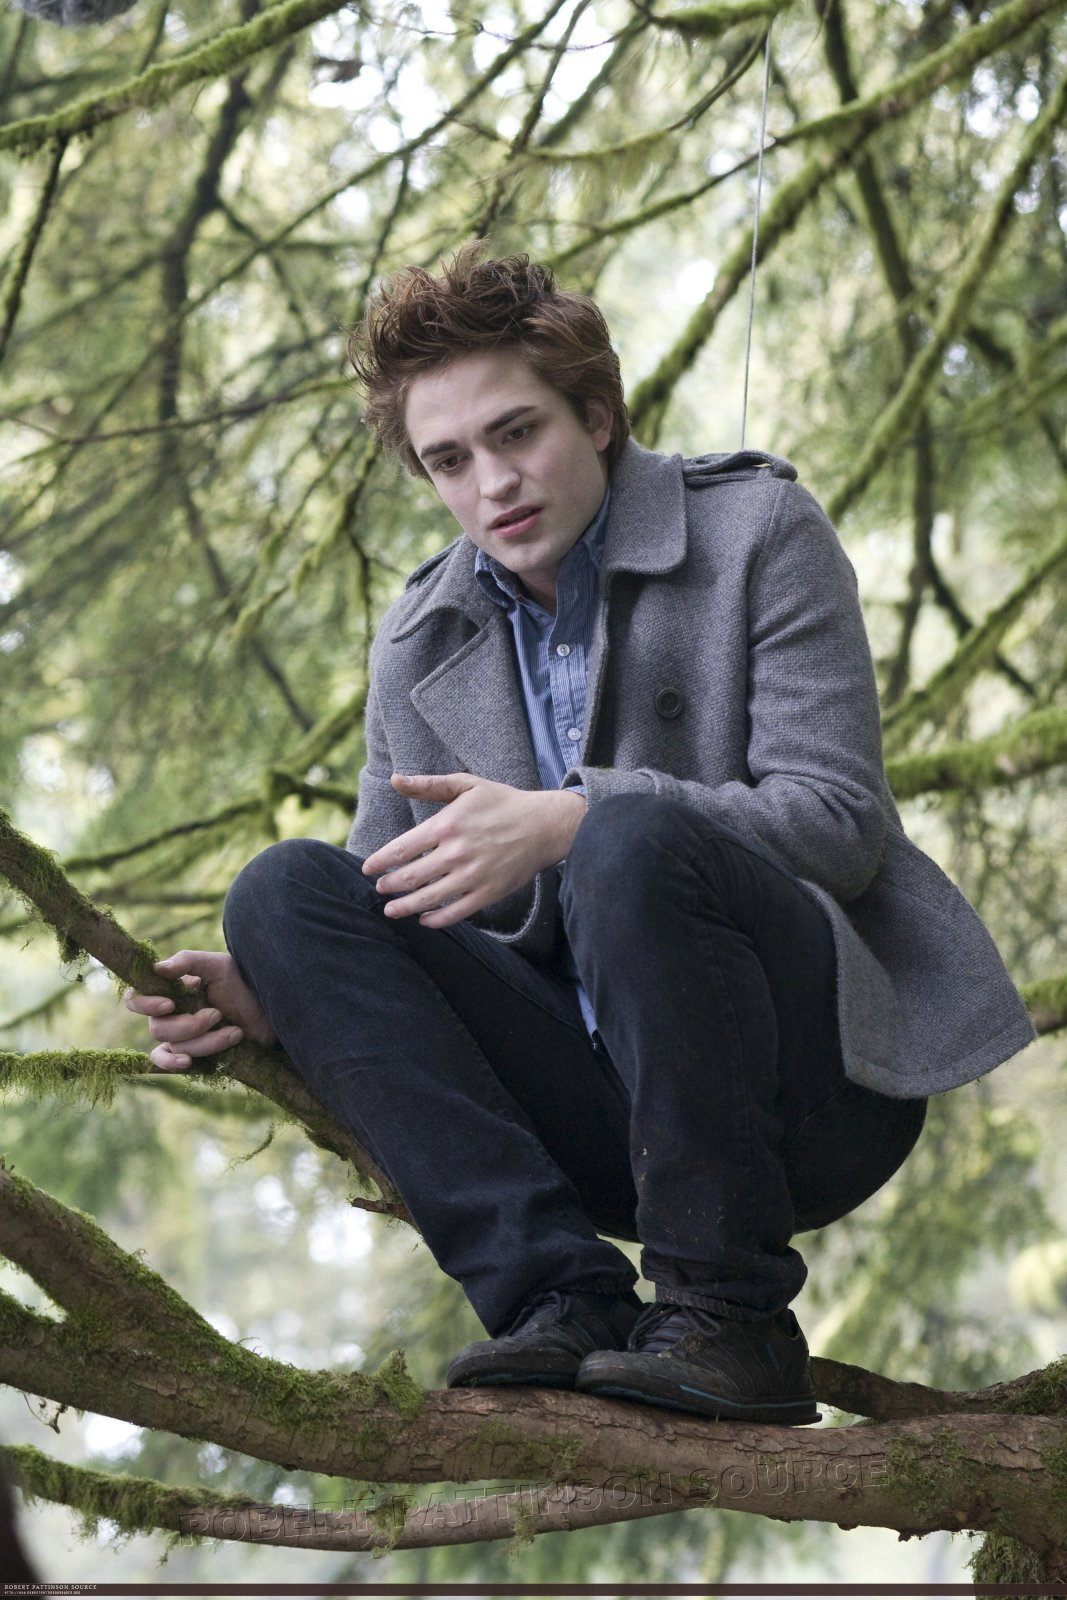 Edward cullen team twilight photo 5230165 fanpop for Twilight edward photos